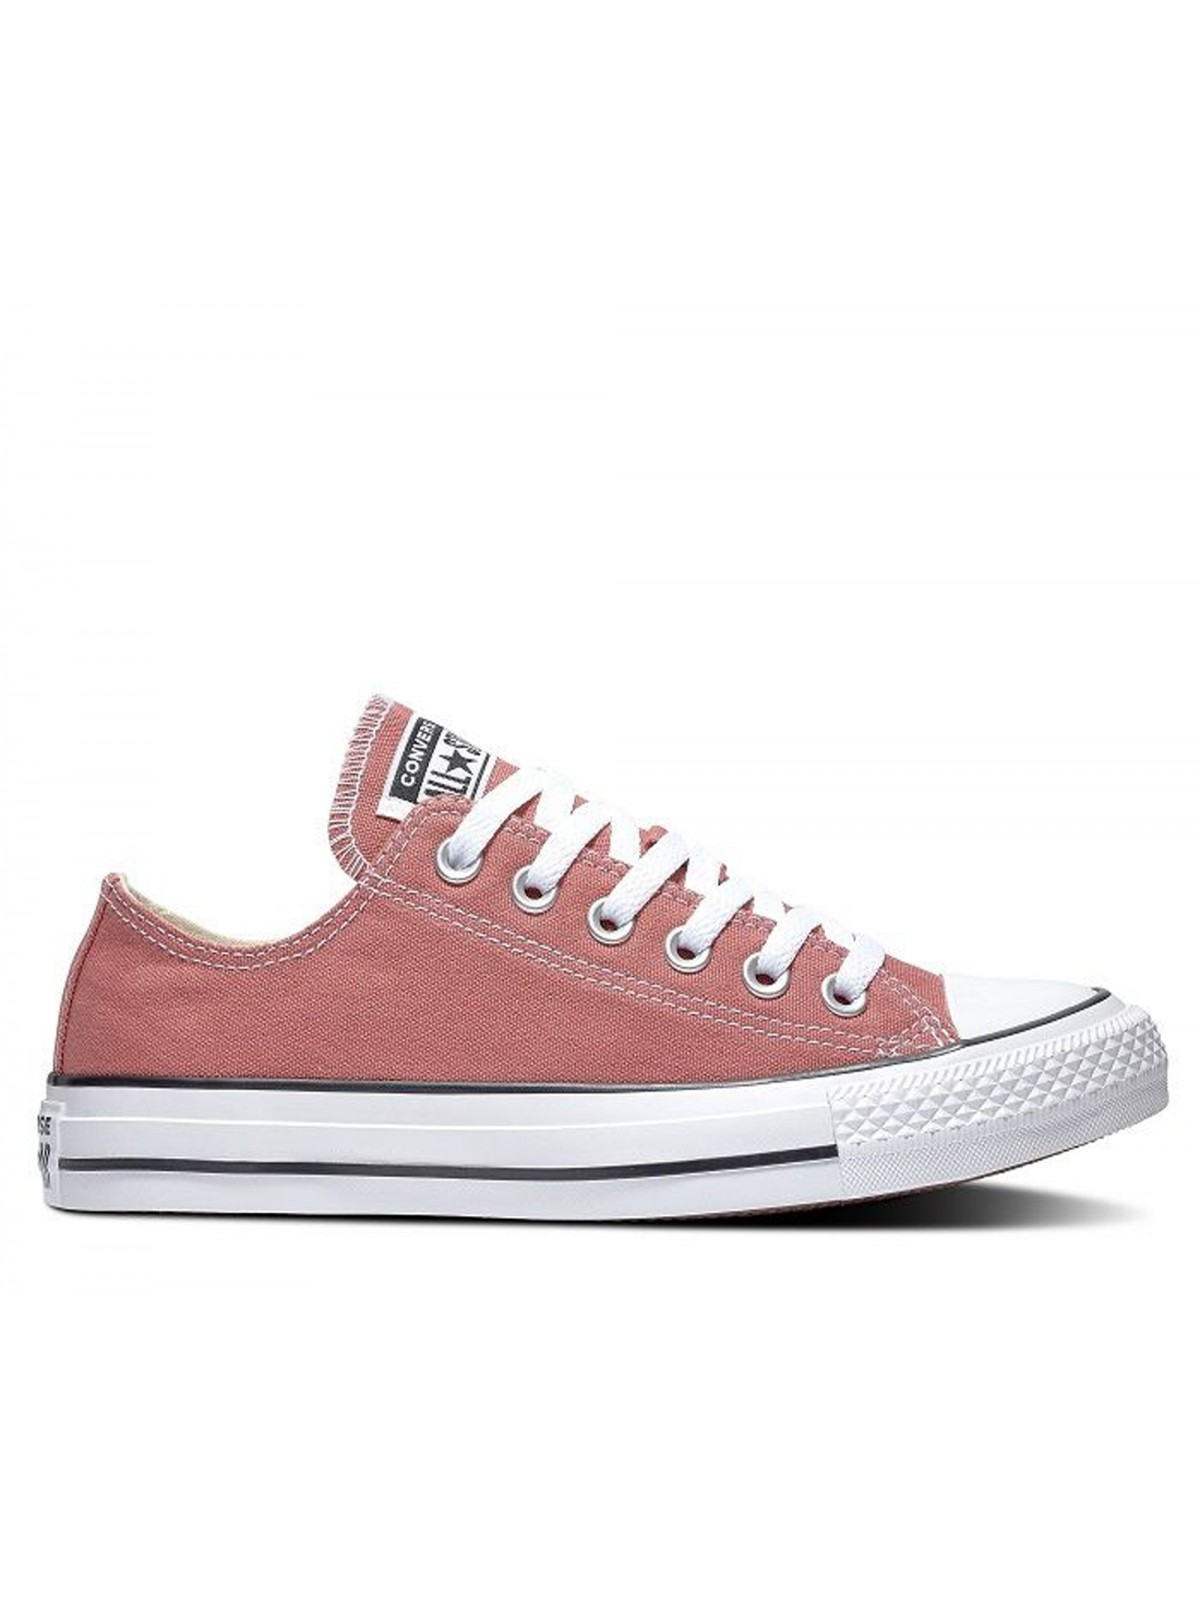 Converse Chuck Taylor all star toile basse redwood